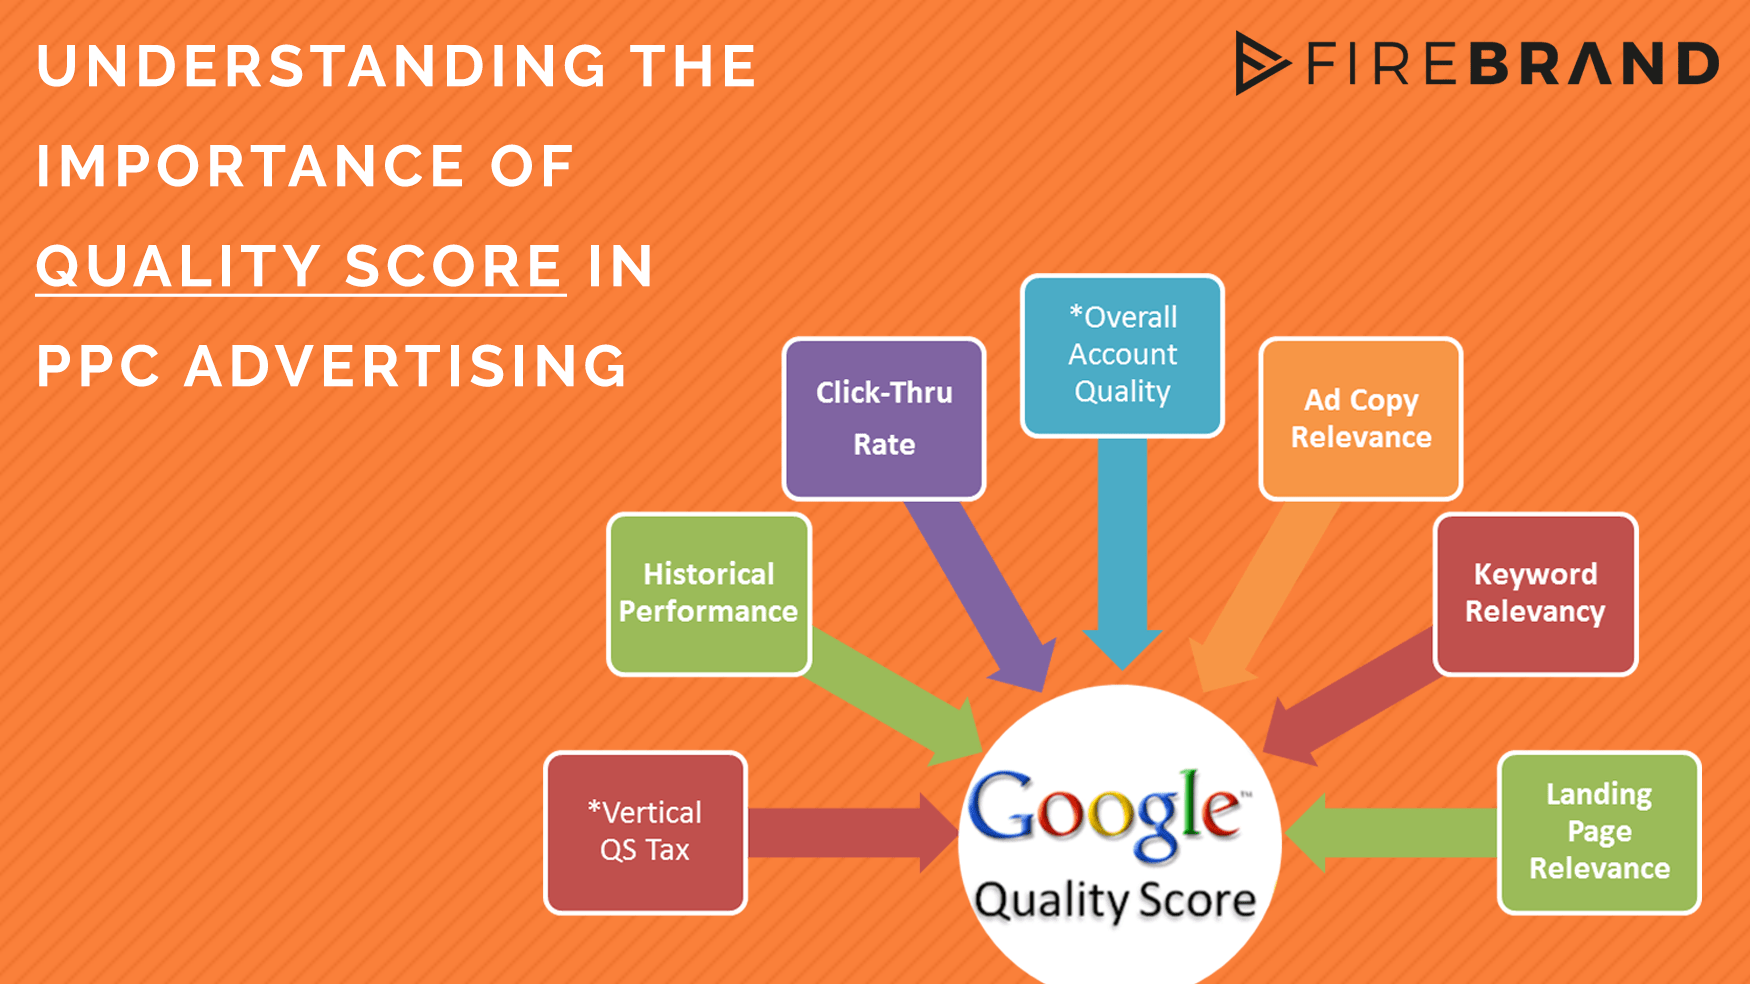 Tips on improving Quality Score in Adwords - Digital Marketing Agency San Francisco